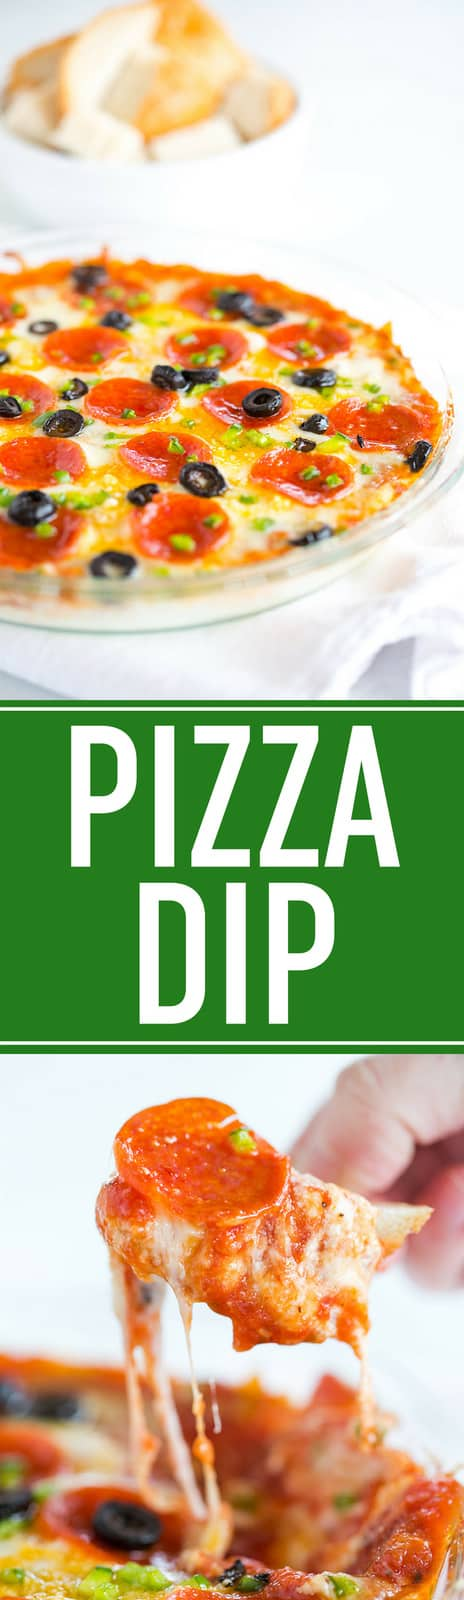 Pizza Dip :: This easy baked pizza dip recipe features layers of mozzarella and Parmesan cheeses, pizza sauce, and your favorite pizza toppings. Always a hit! #pizza #dip #appetizer #footballfood #superbowl